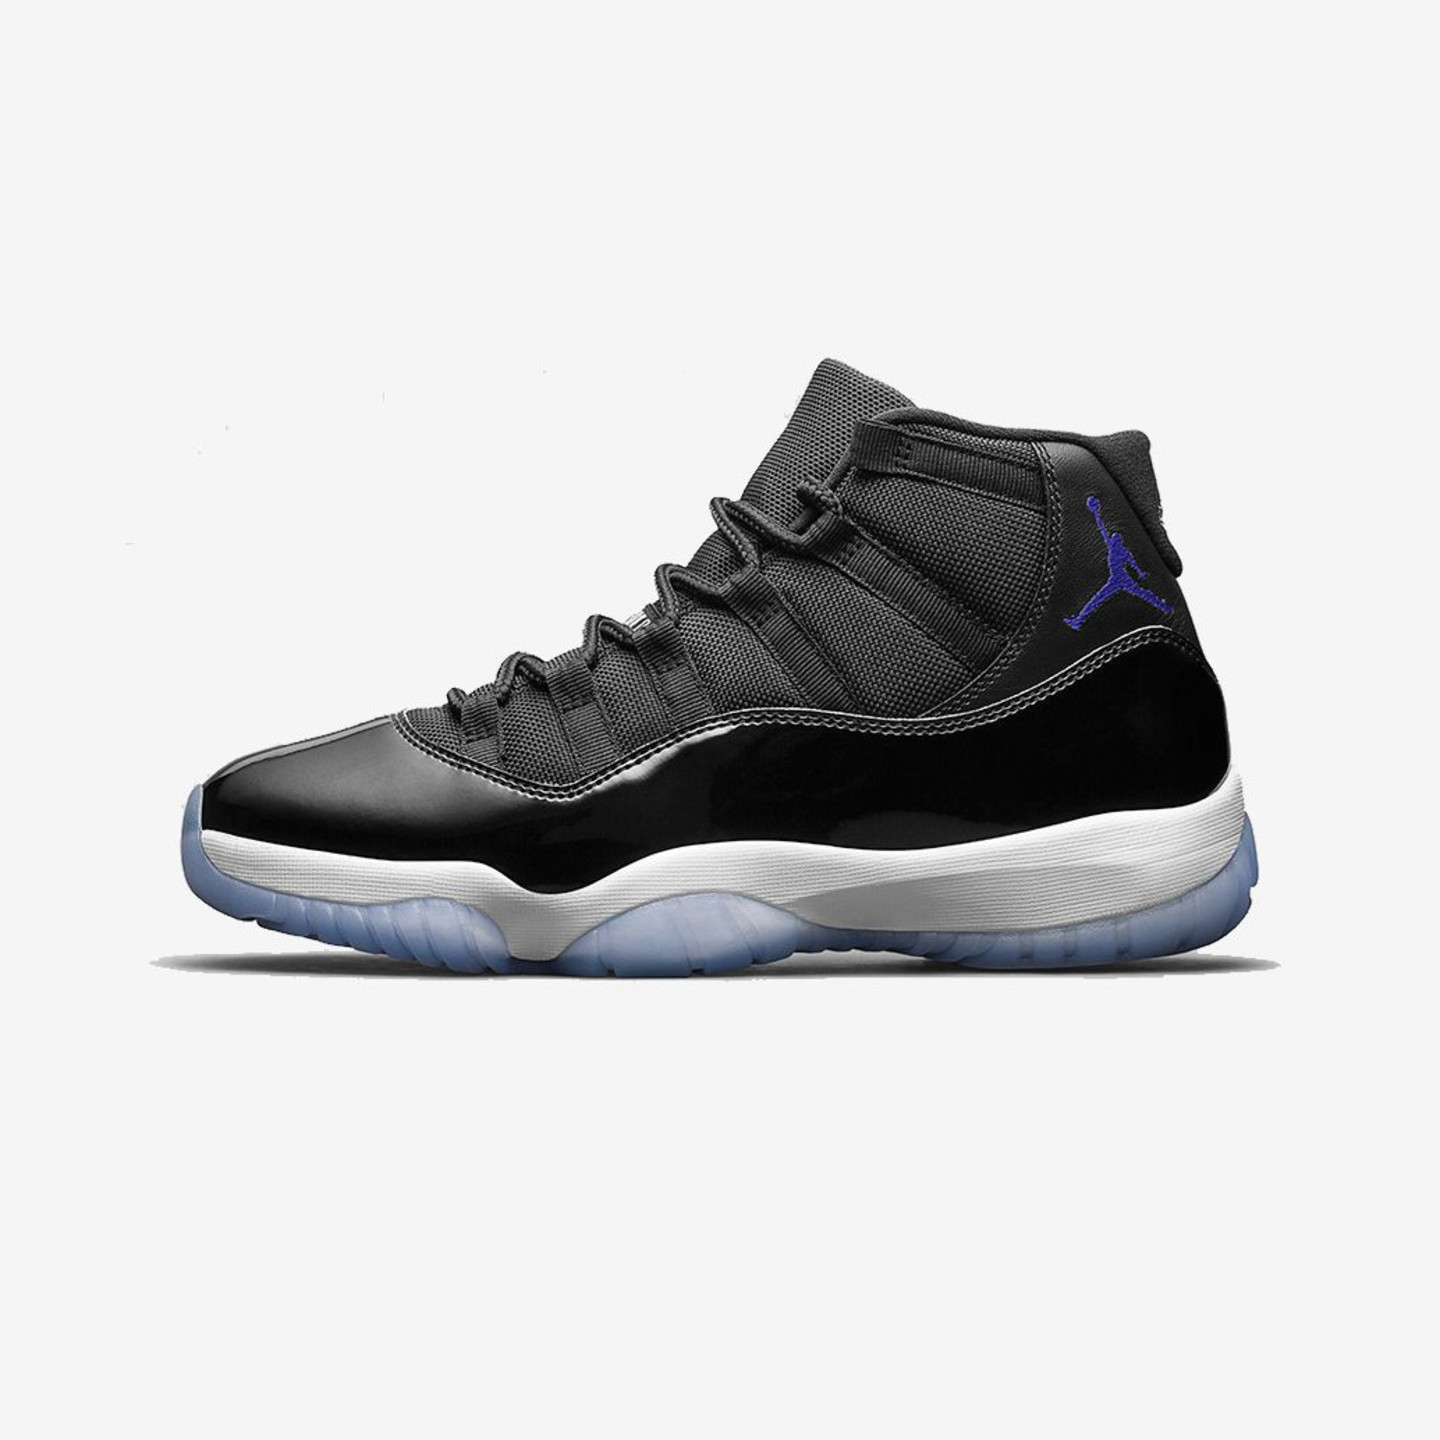 Jordan Air Jordan 11 Retro GS  'Space Jam' Black / Concord / White 378038-003-37.5